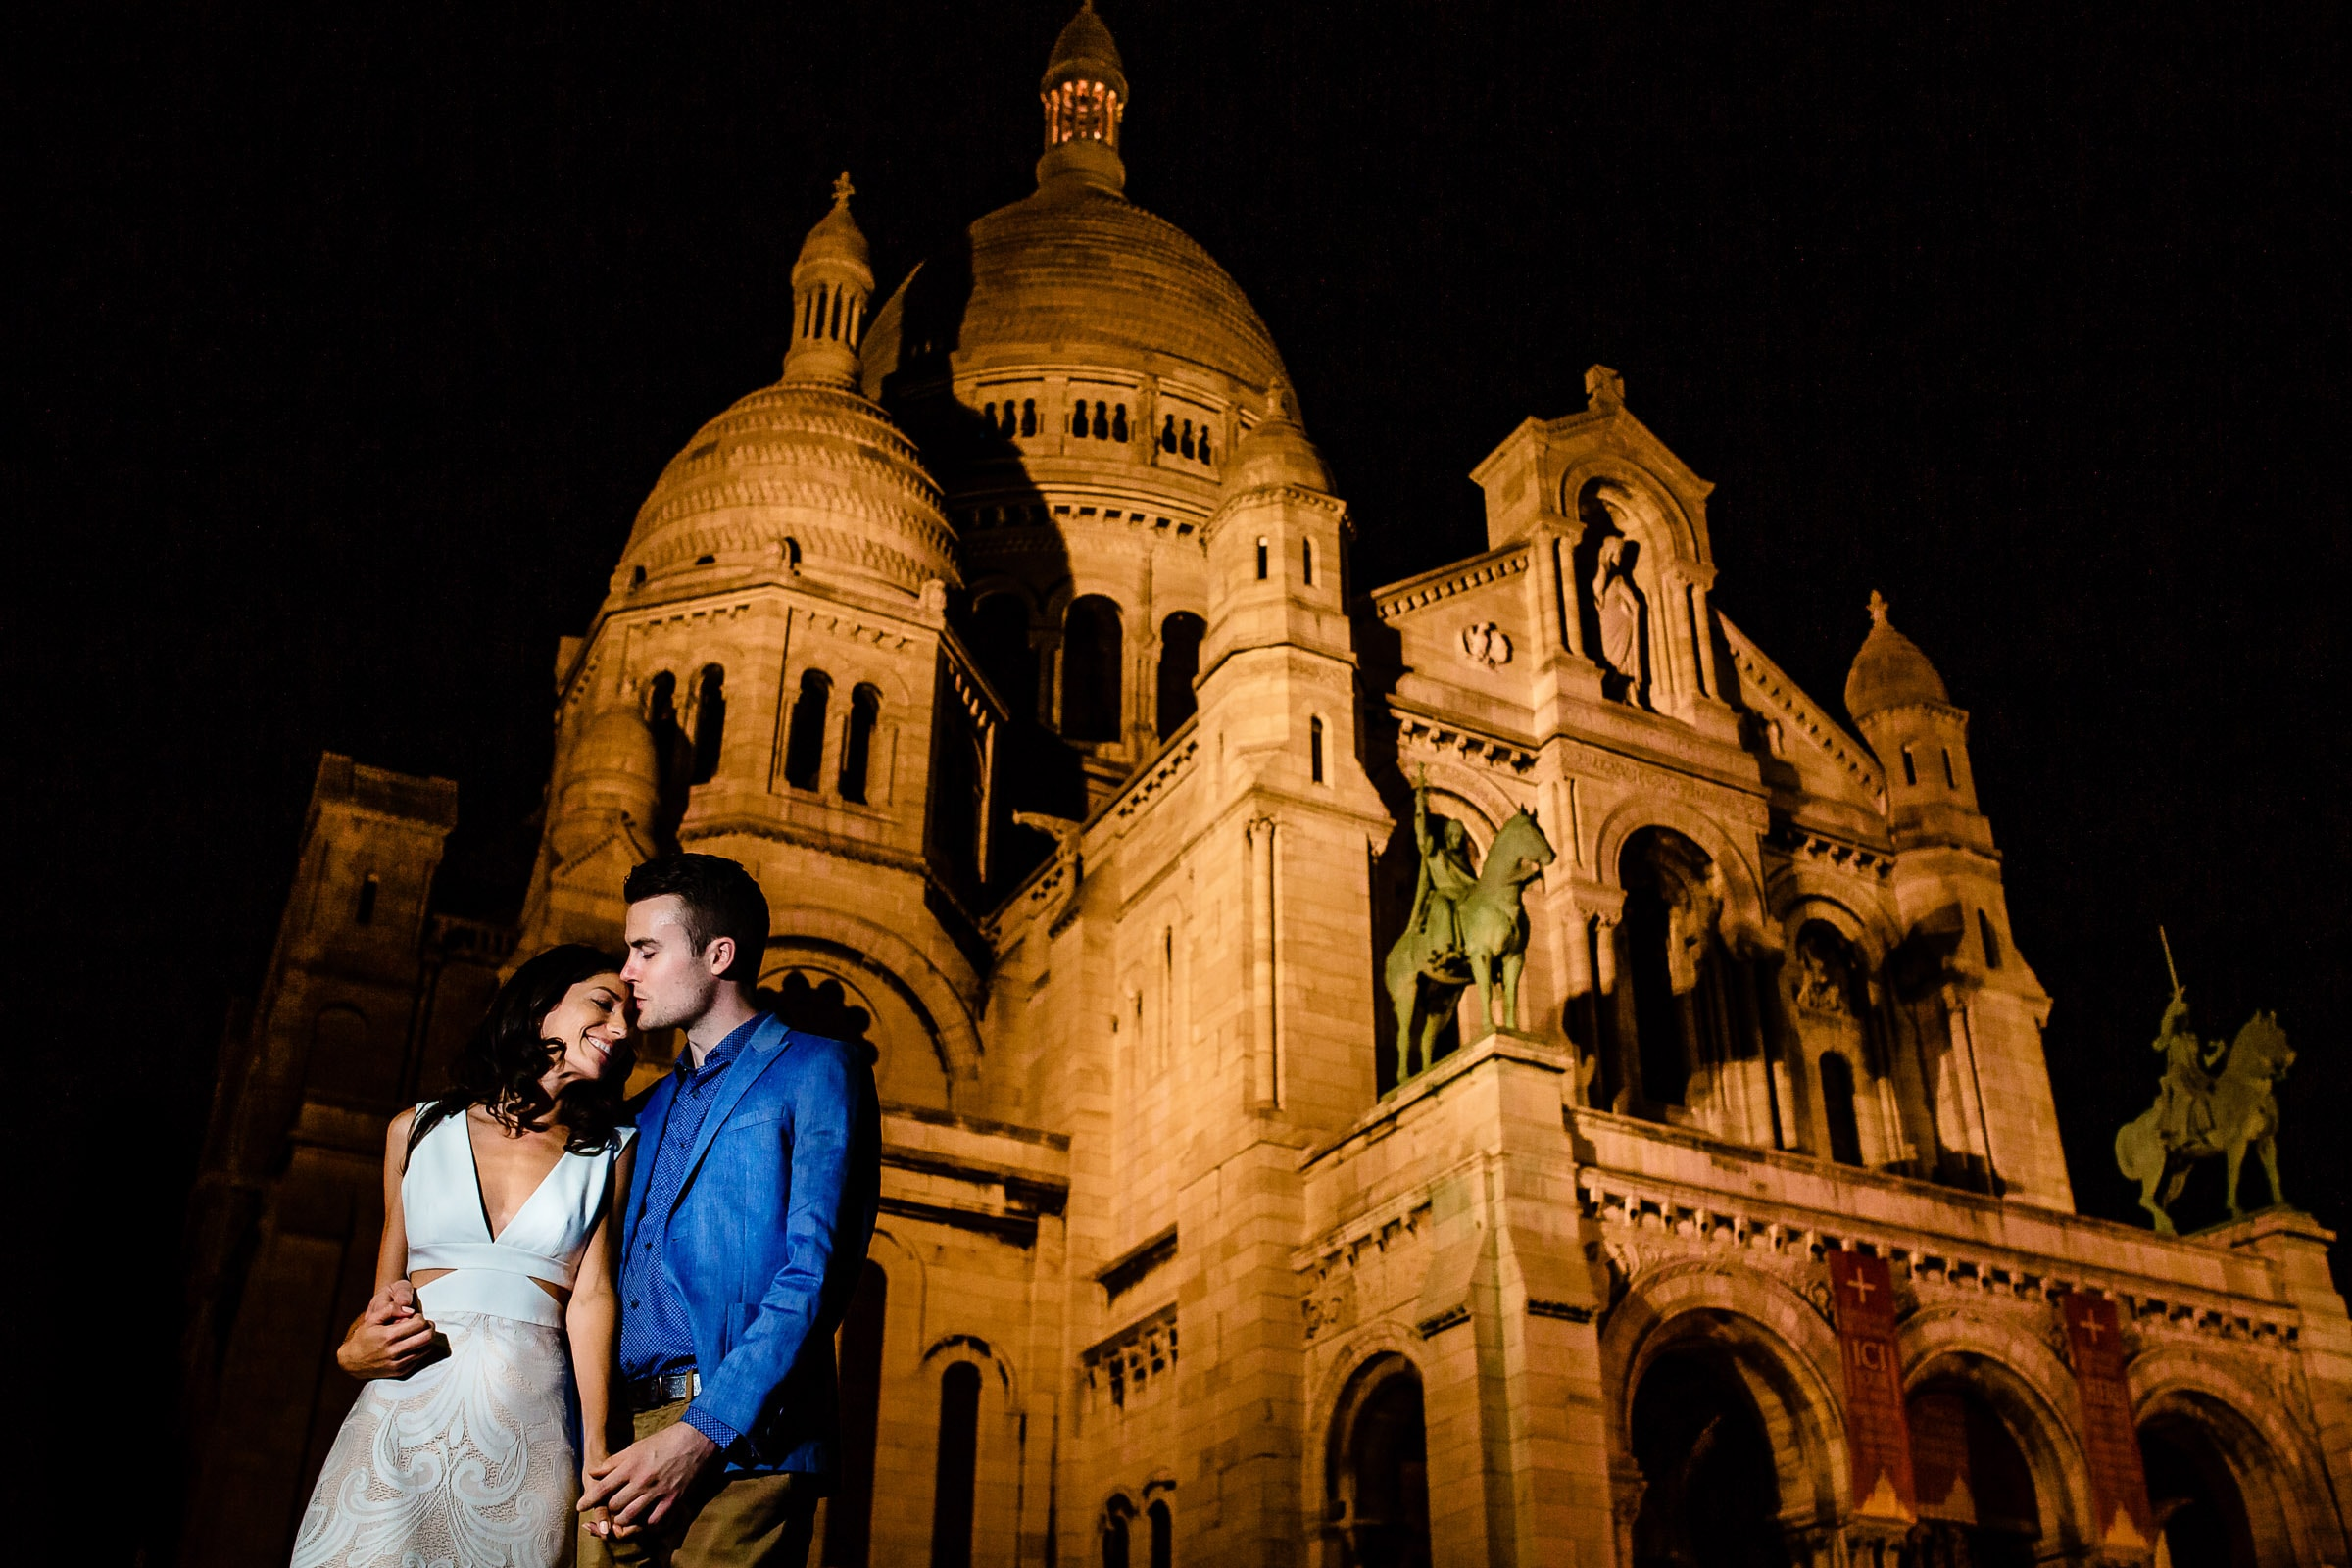 A creative portrait of a couple embracing near Sacre Coeur cathedral during their Paris engagement photos session